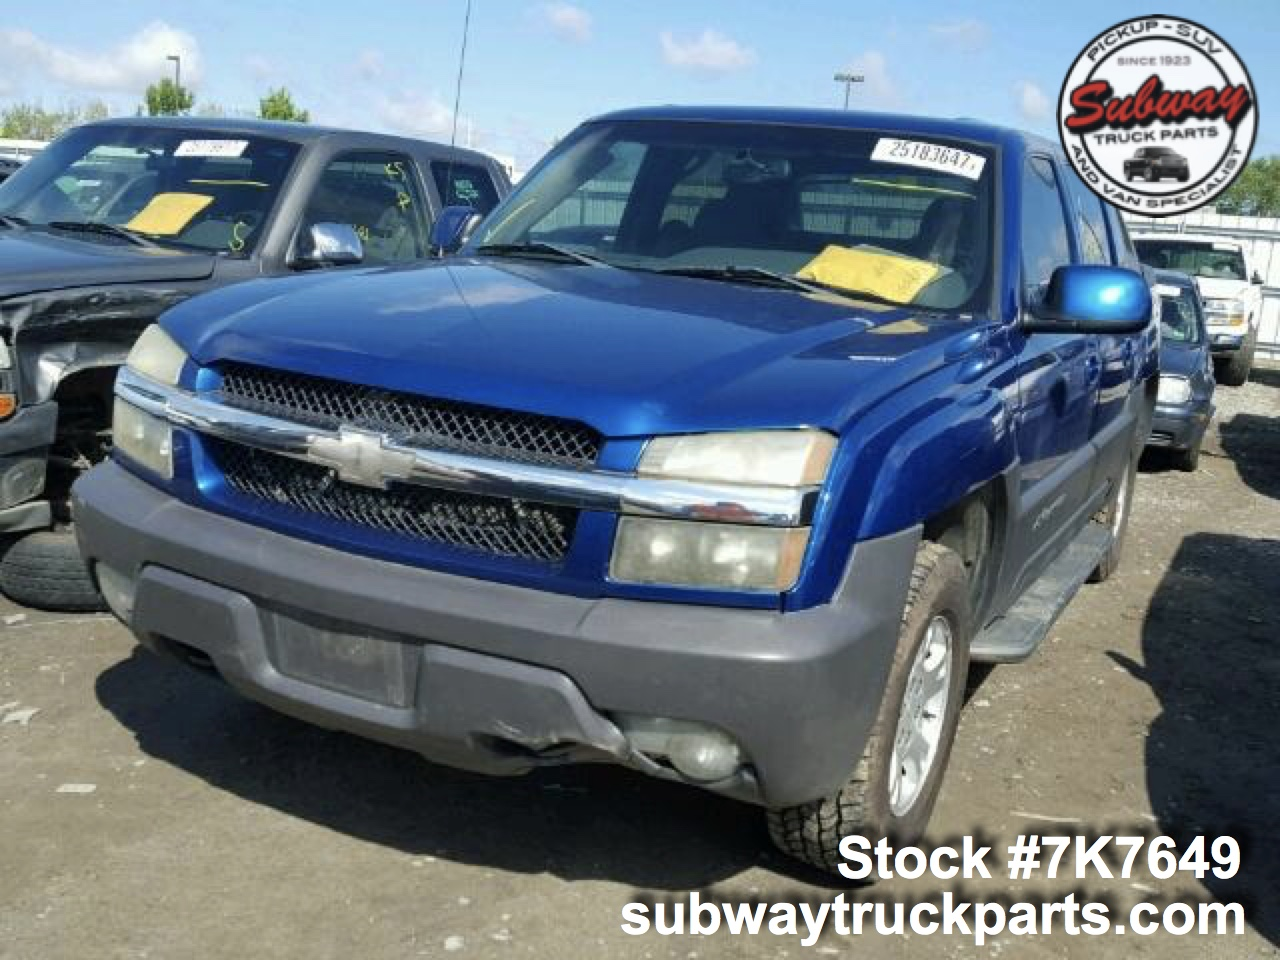 Pro 4x Frontier >> Used Parts 2003 Chevrolet Avalanche 1500 5.3L 4x2 | Subway Truck Parts